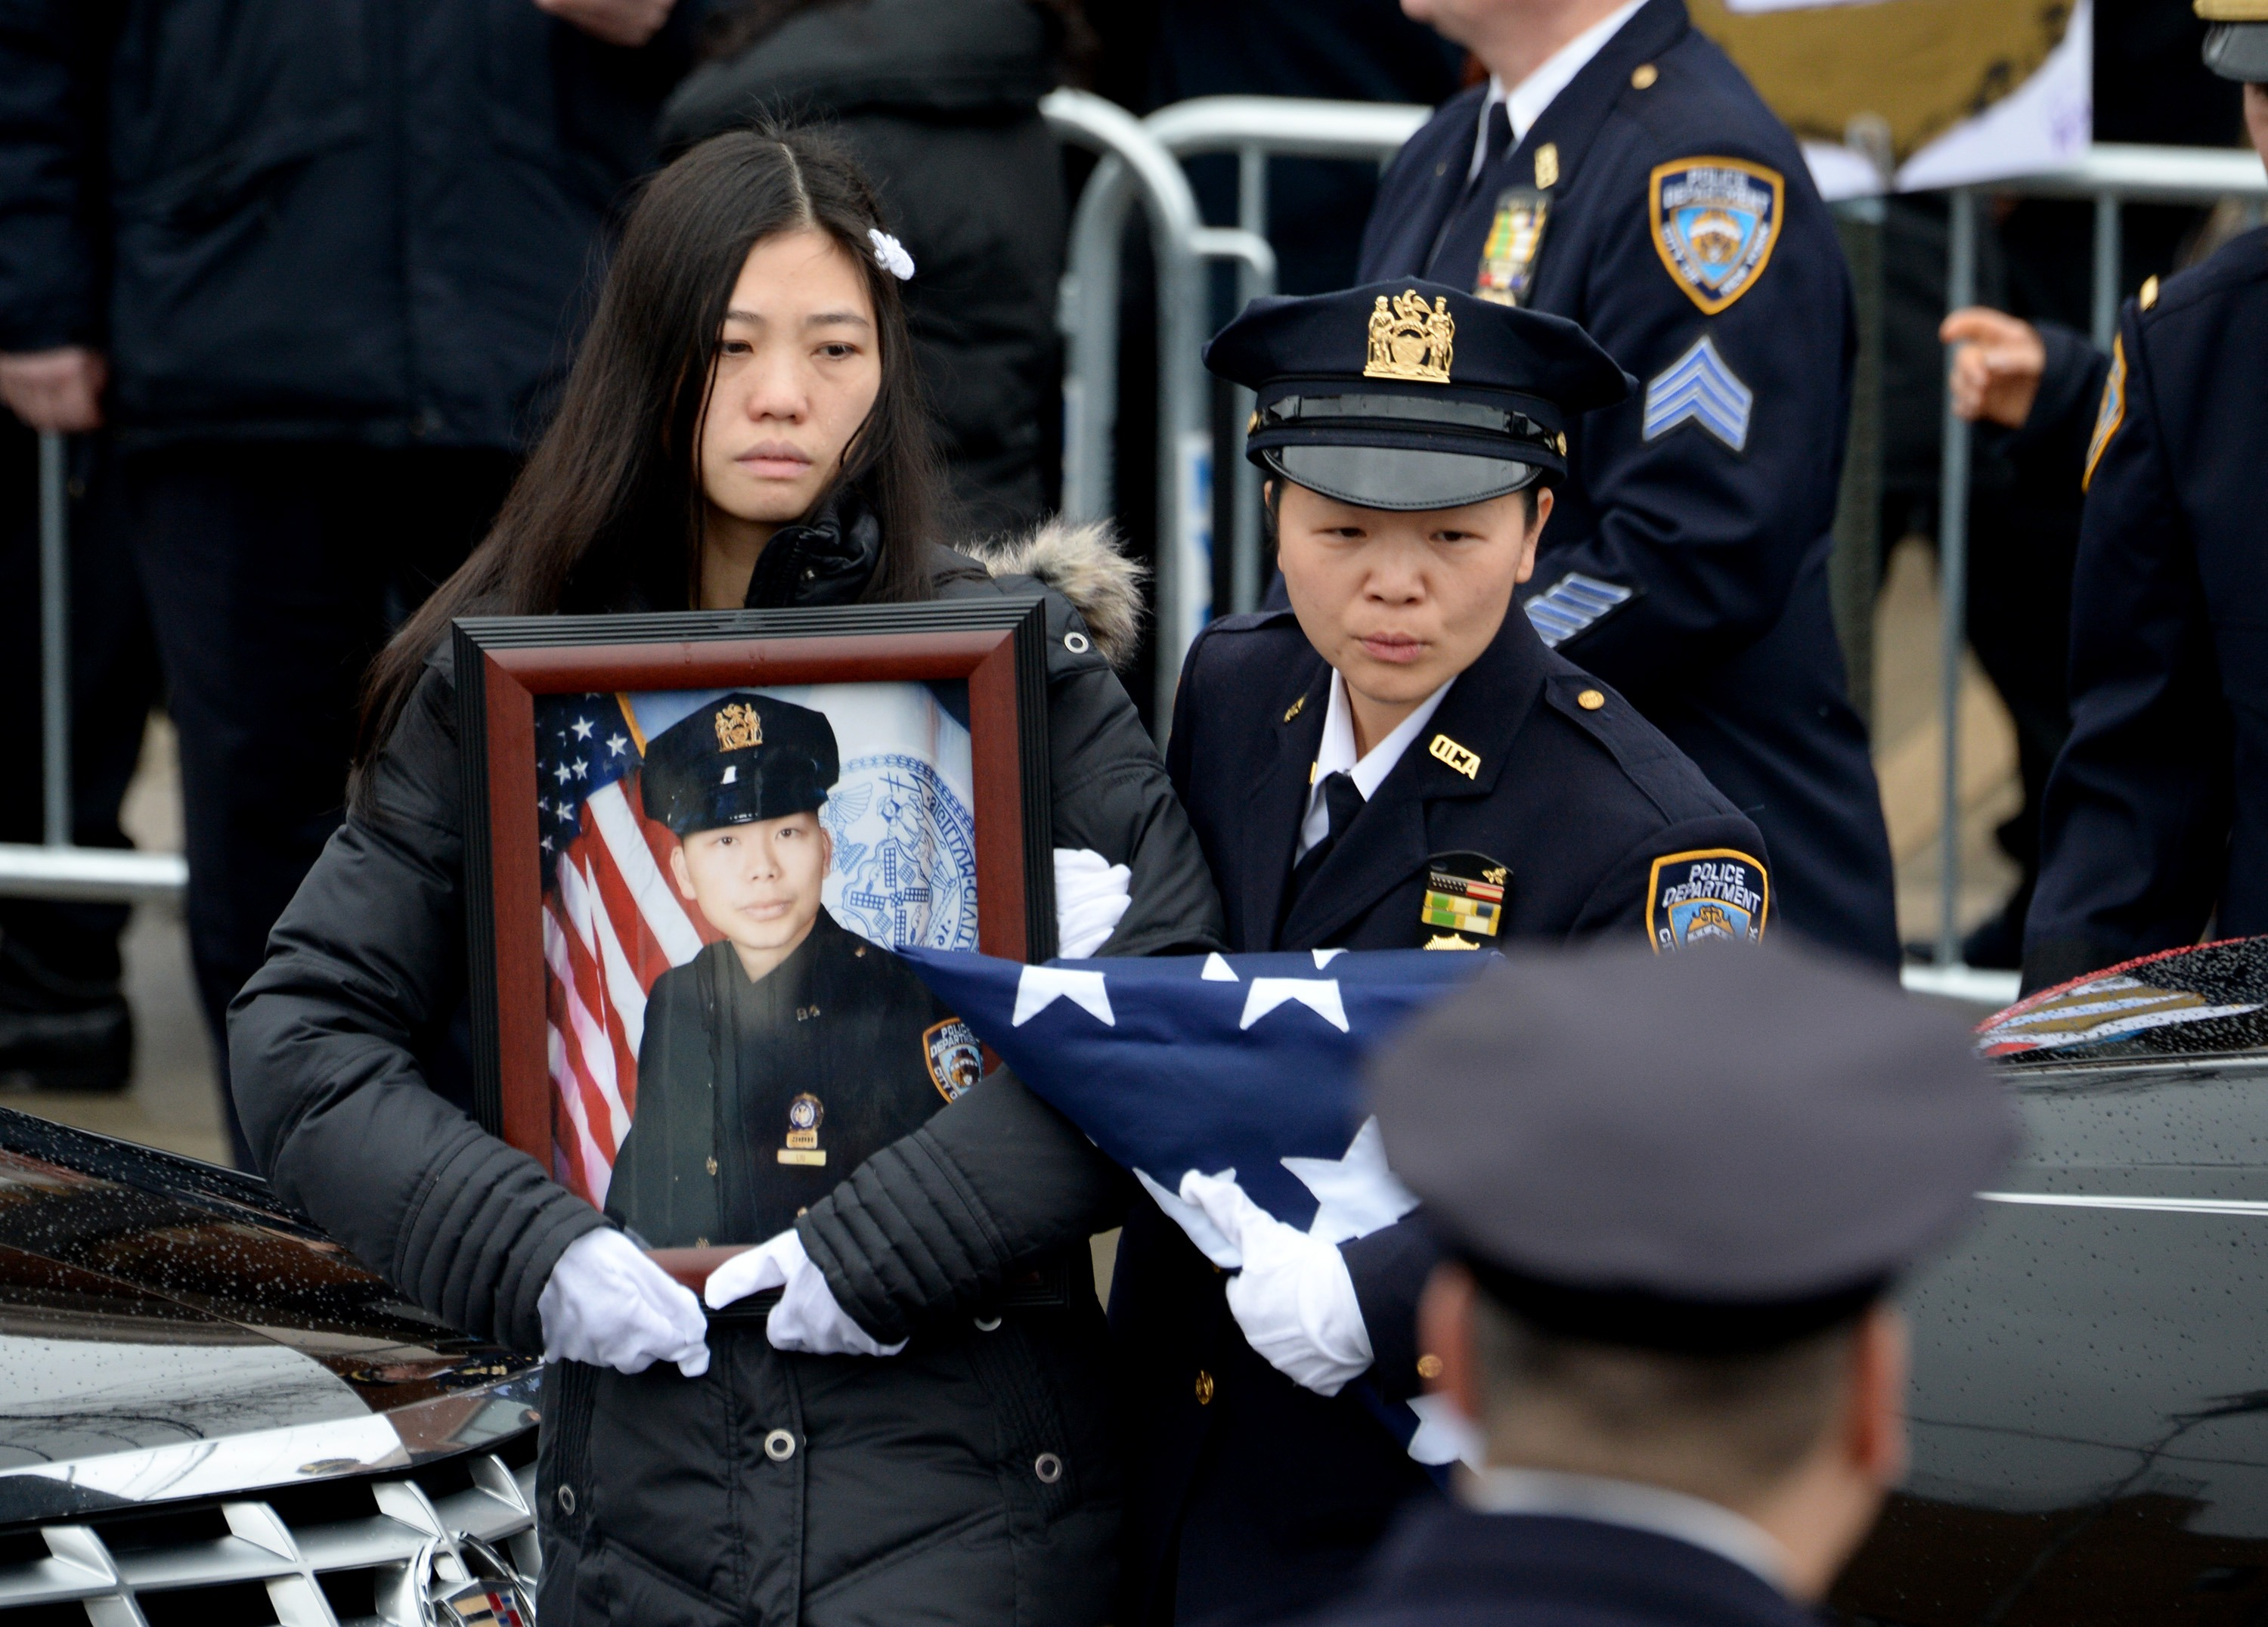 Pei Xia Chen, widow of New York Police Officer Wenjian Liu, during his funeral on Jan. 4, 2015 in the Brooklyn borough of New York City.